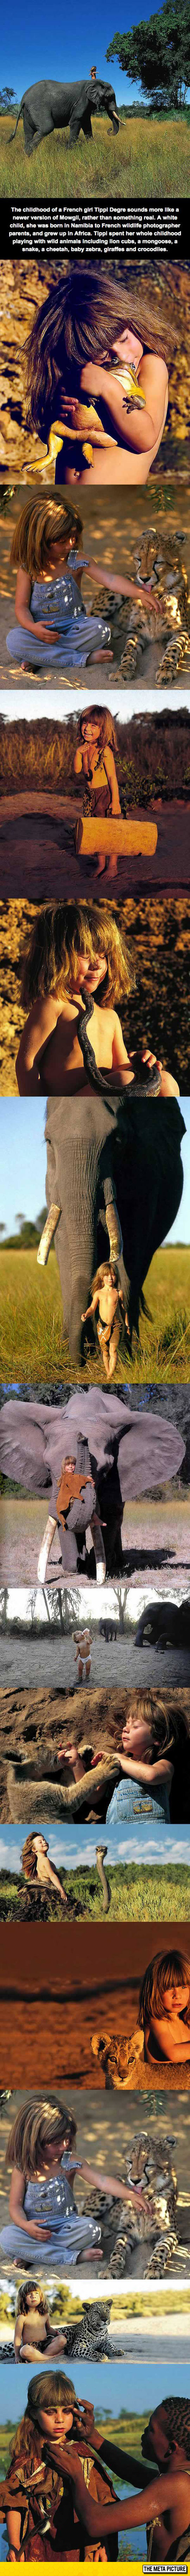 funny-little-girl-African-animals-jungle